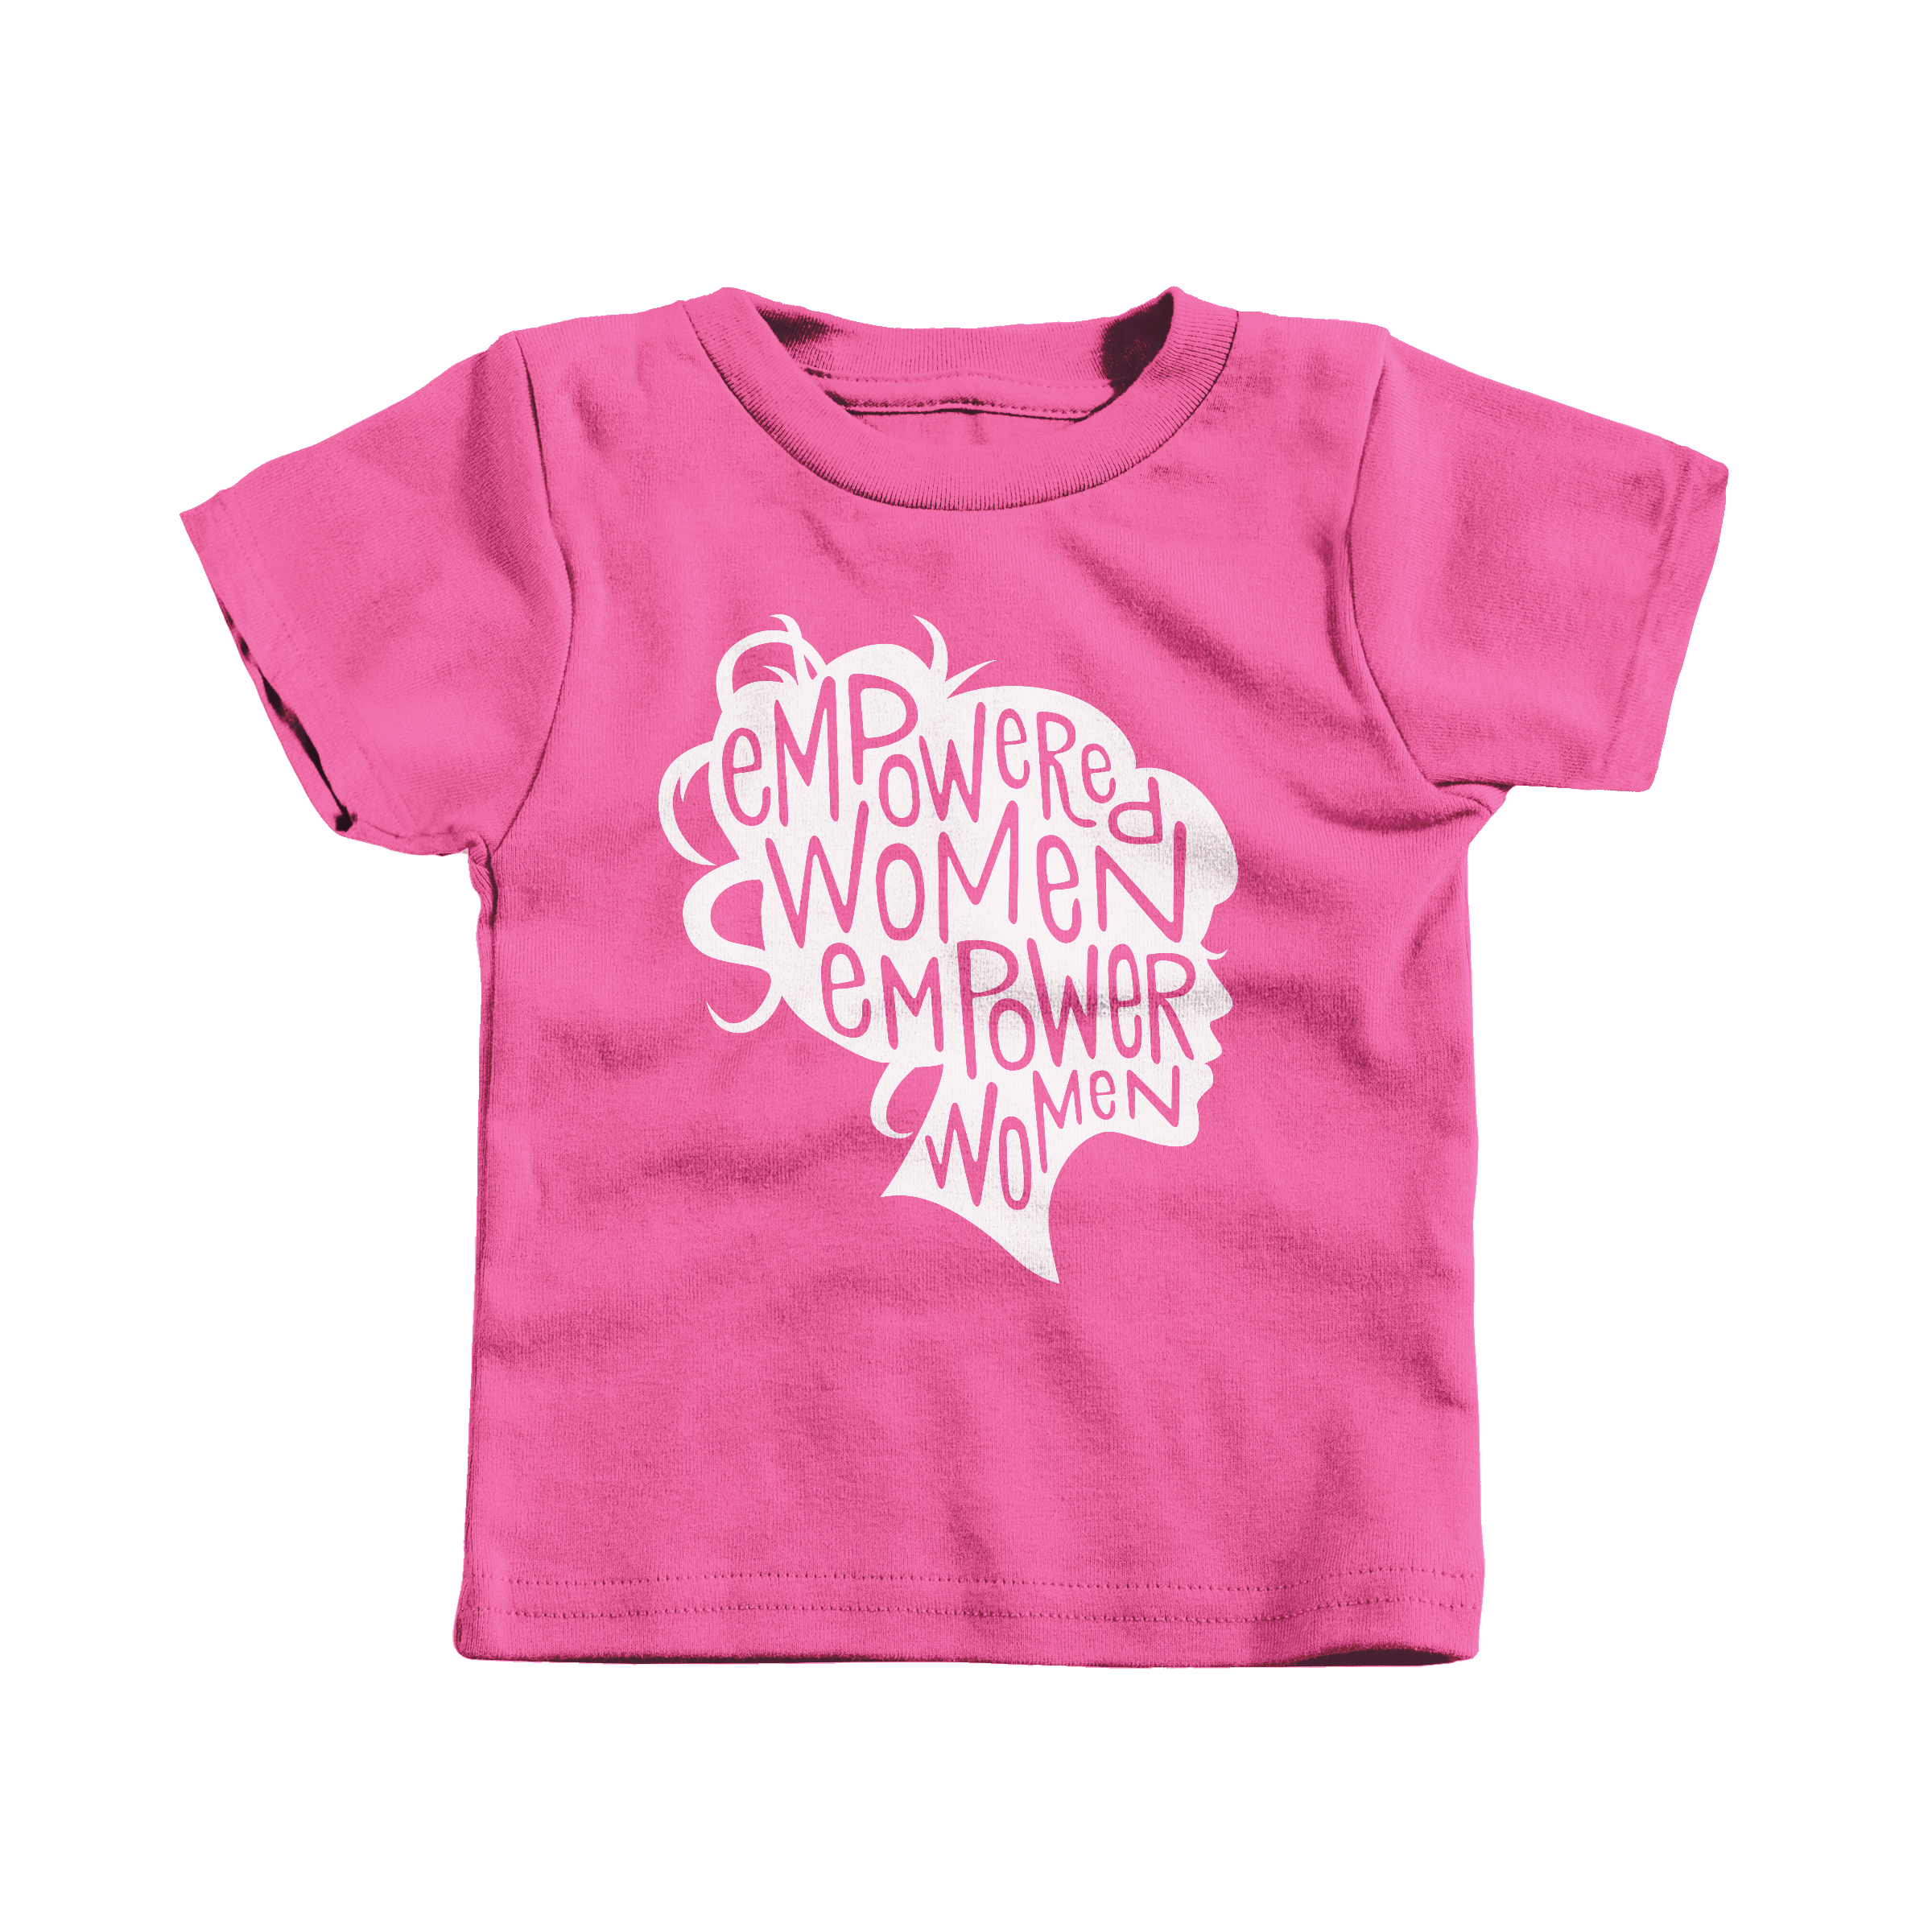 Empowered Women Empower Women Hot Pink (T-Shirt)